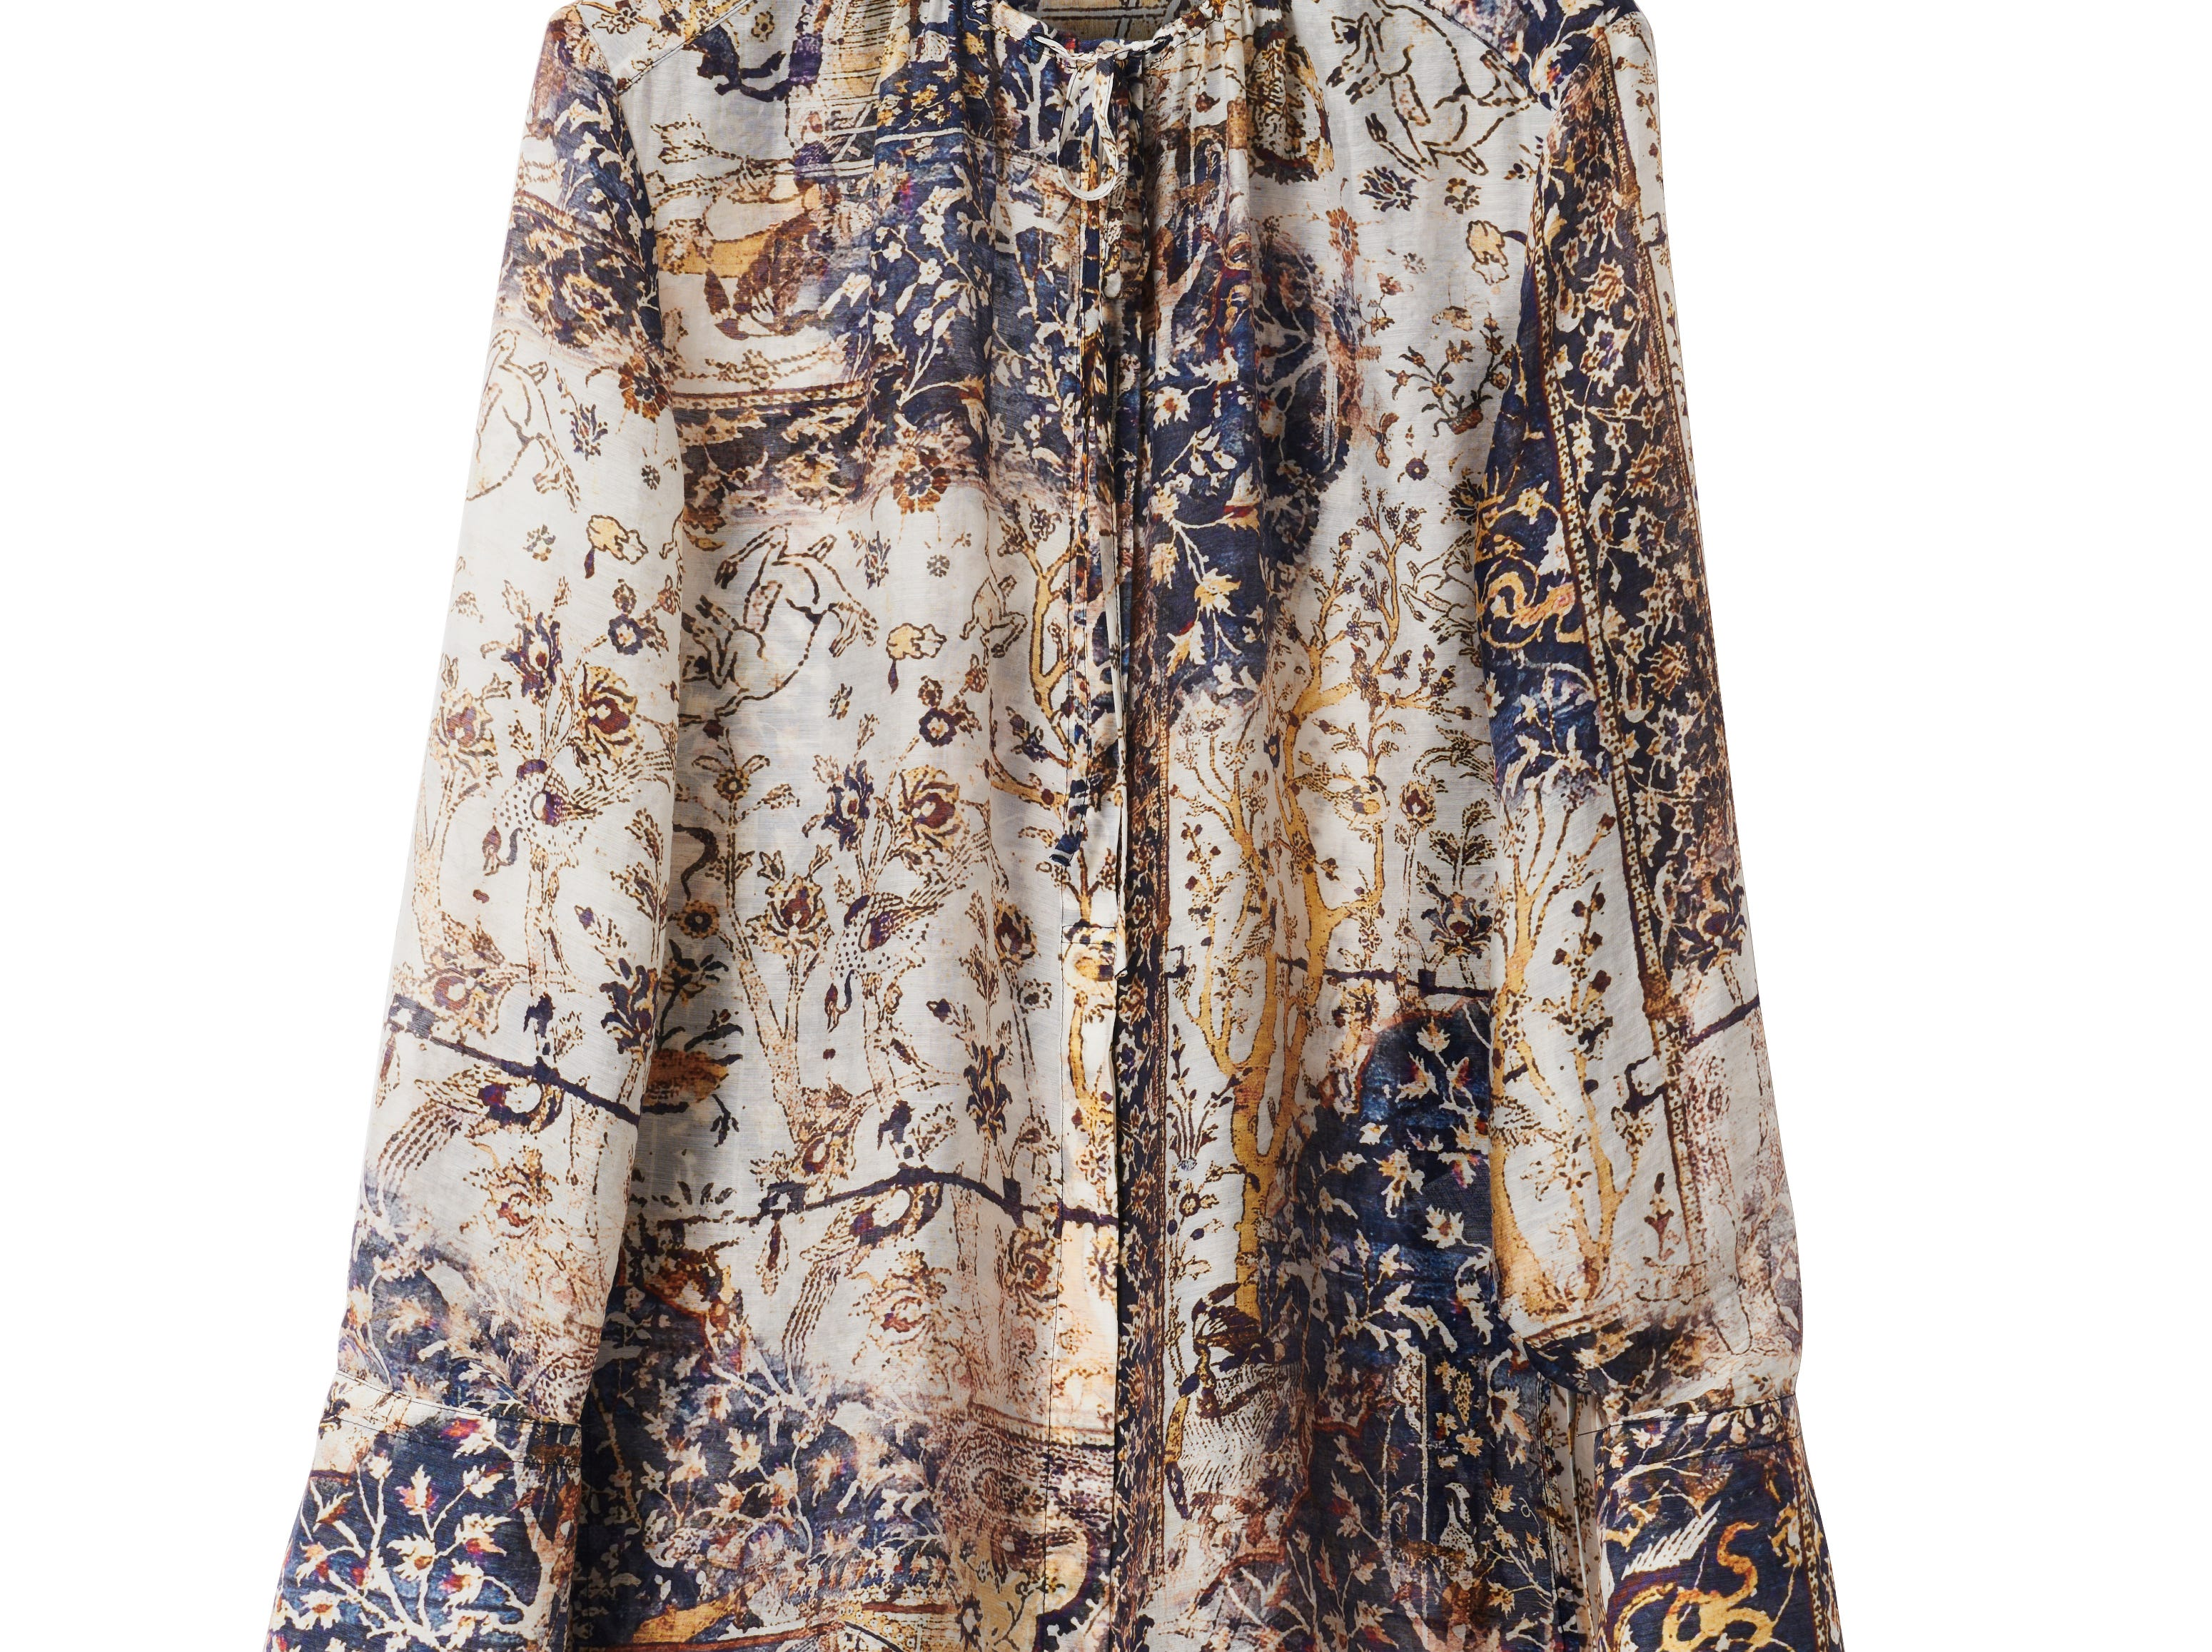 Tencel, a cellulosic fiber obtained from wood pulp using recyclable solvents, is another sustainable fabric that H&M is using in its Conscious Exclusive collection for autumn and winter. Here, a tencel blouse priced at $79.99